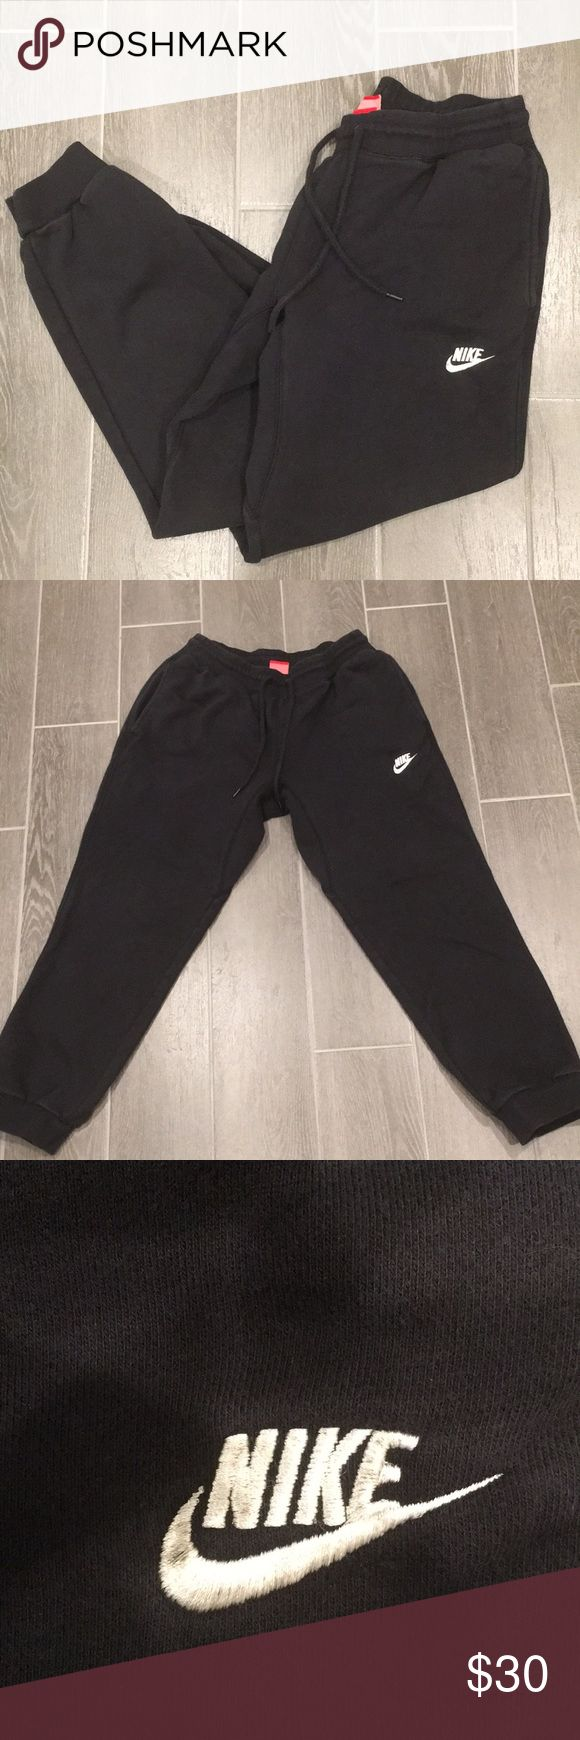 Men's NIKE Joggers Men's NIKE Sweatpants worn a handful of times  Boyfriend doesn't like how they are tight at the ankles (he prefers straight leg)  Black mark on Nike symbol — in otherwise superior condition Nike Pants Sweatpants & Joggers